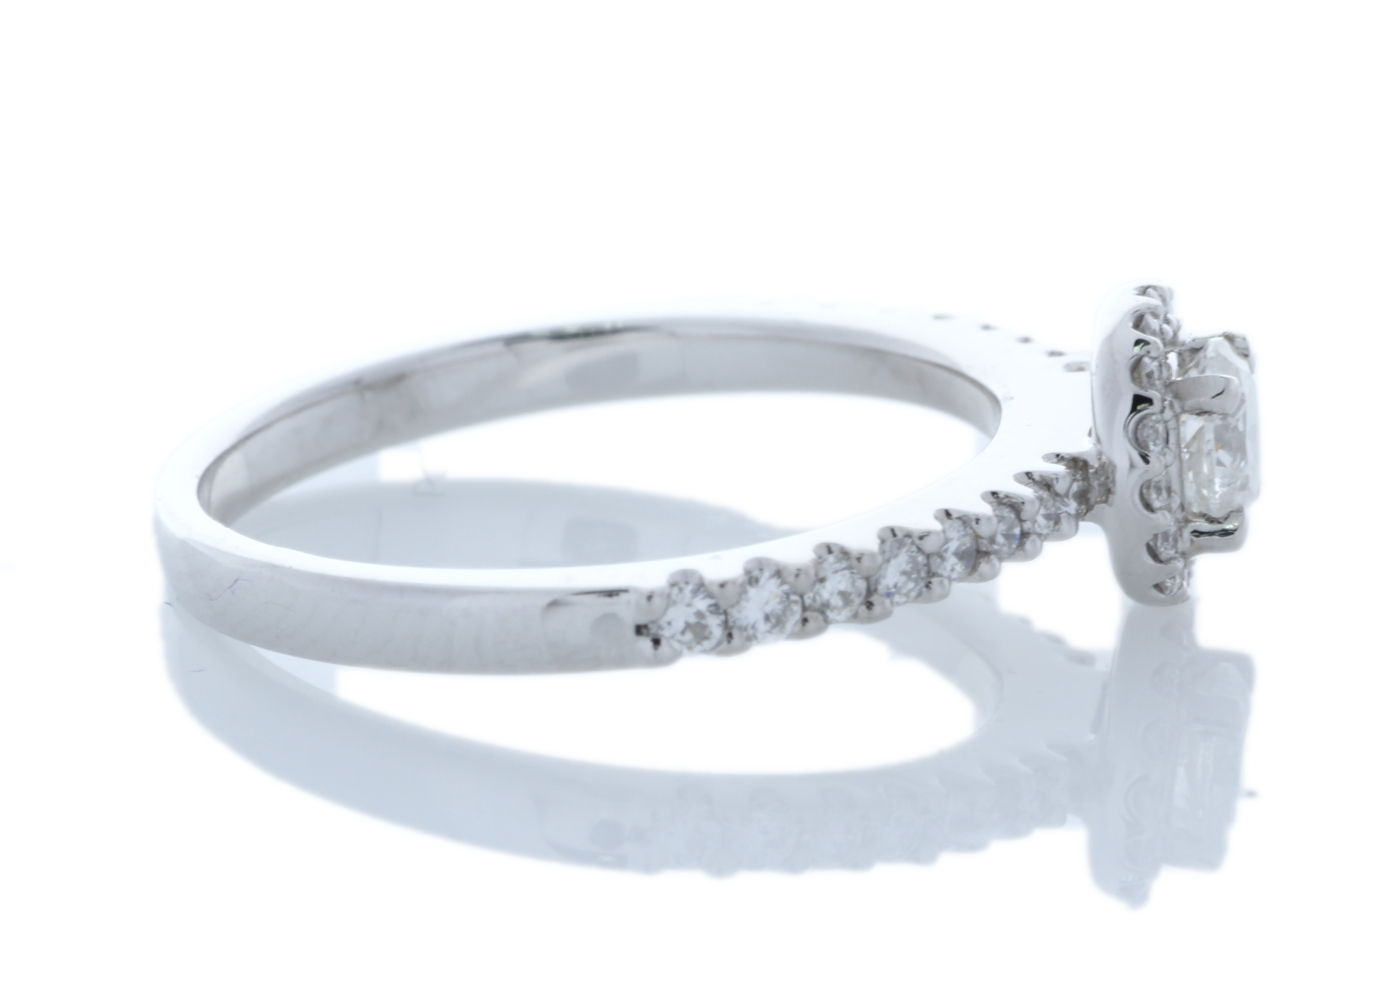 18ct White Gold Halo Set Ring 0.63 Carats - Image 4 of 5